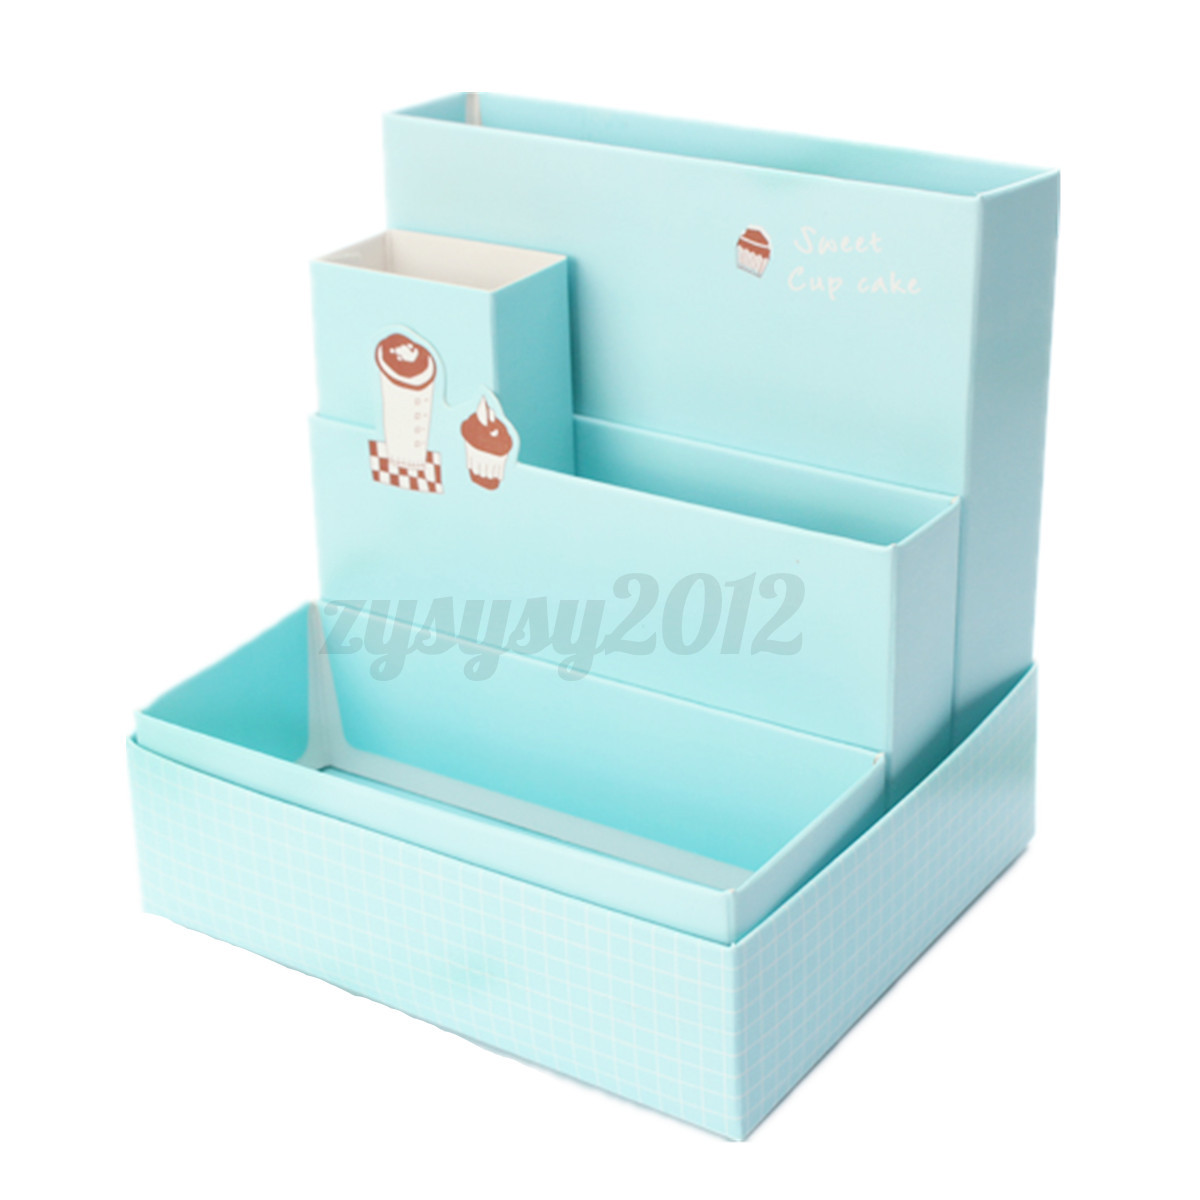 Cute Desktop Organizers Cute Paper Storage Organizer Stationery Box Makeup